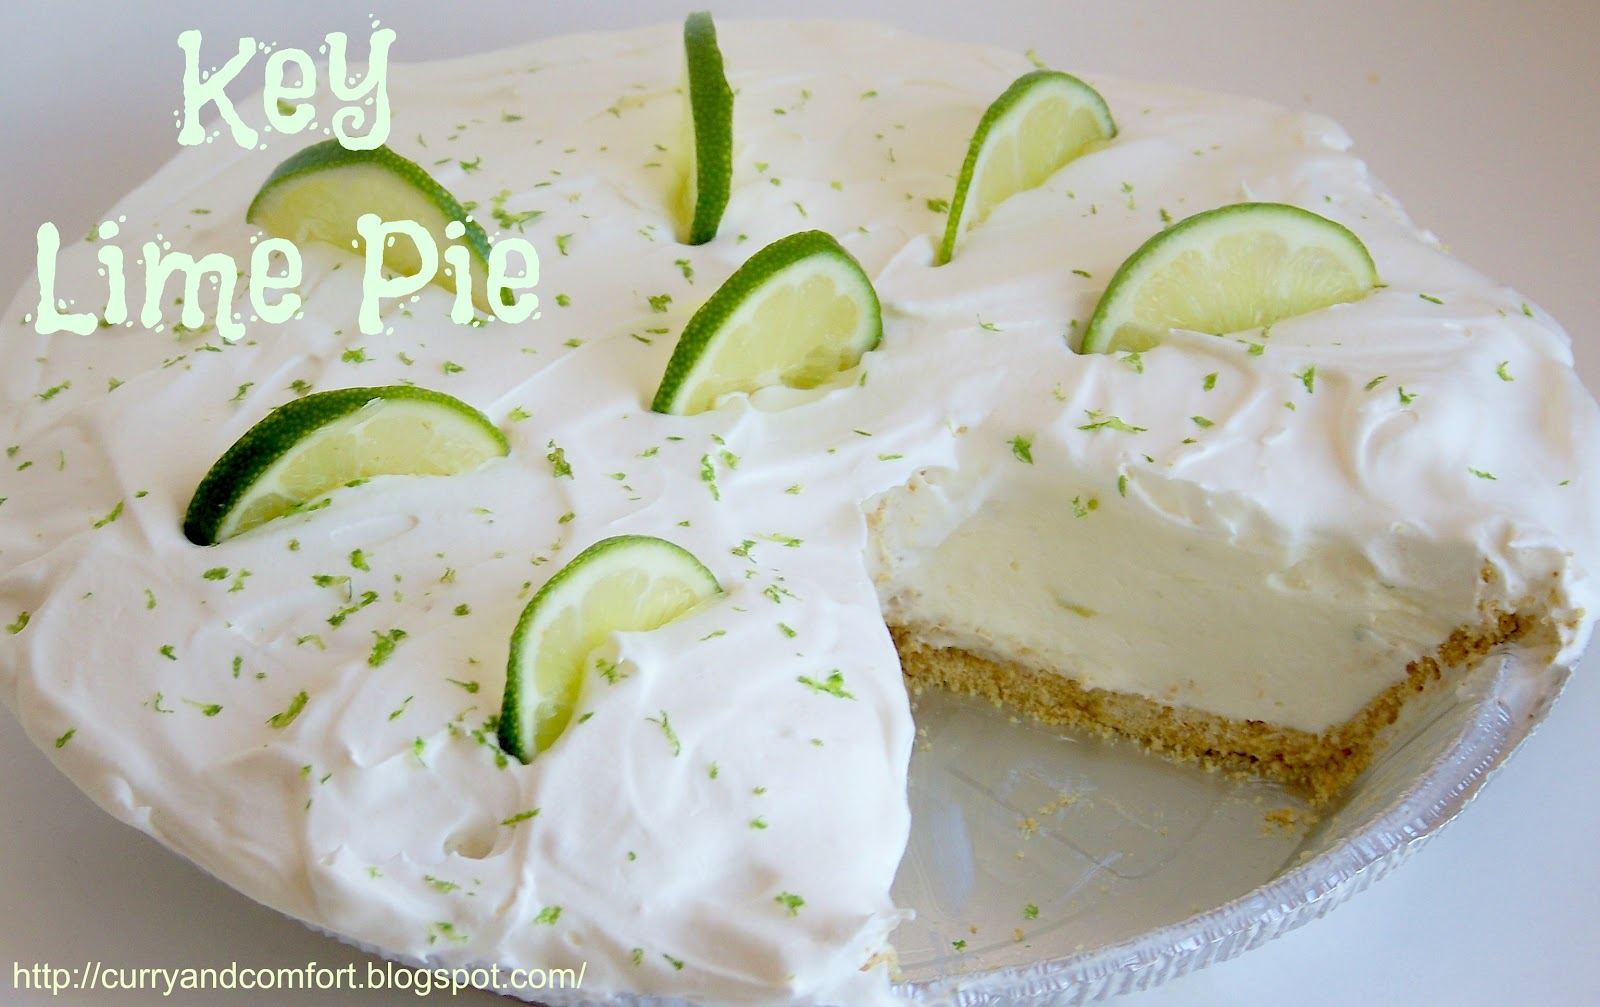 Curry and Comfort: Key Lime Pie- No Bake Version